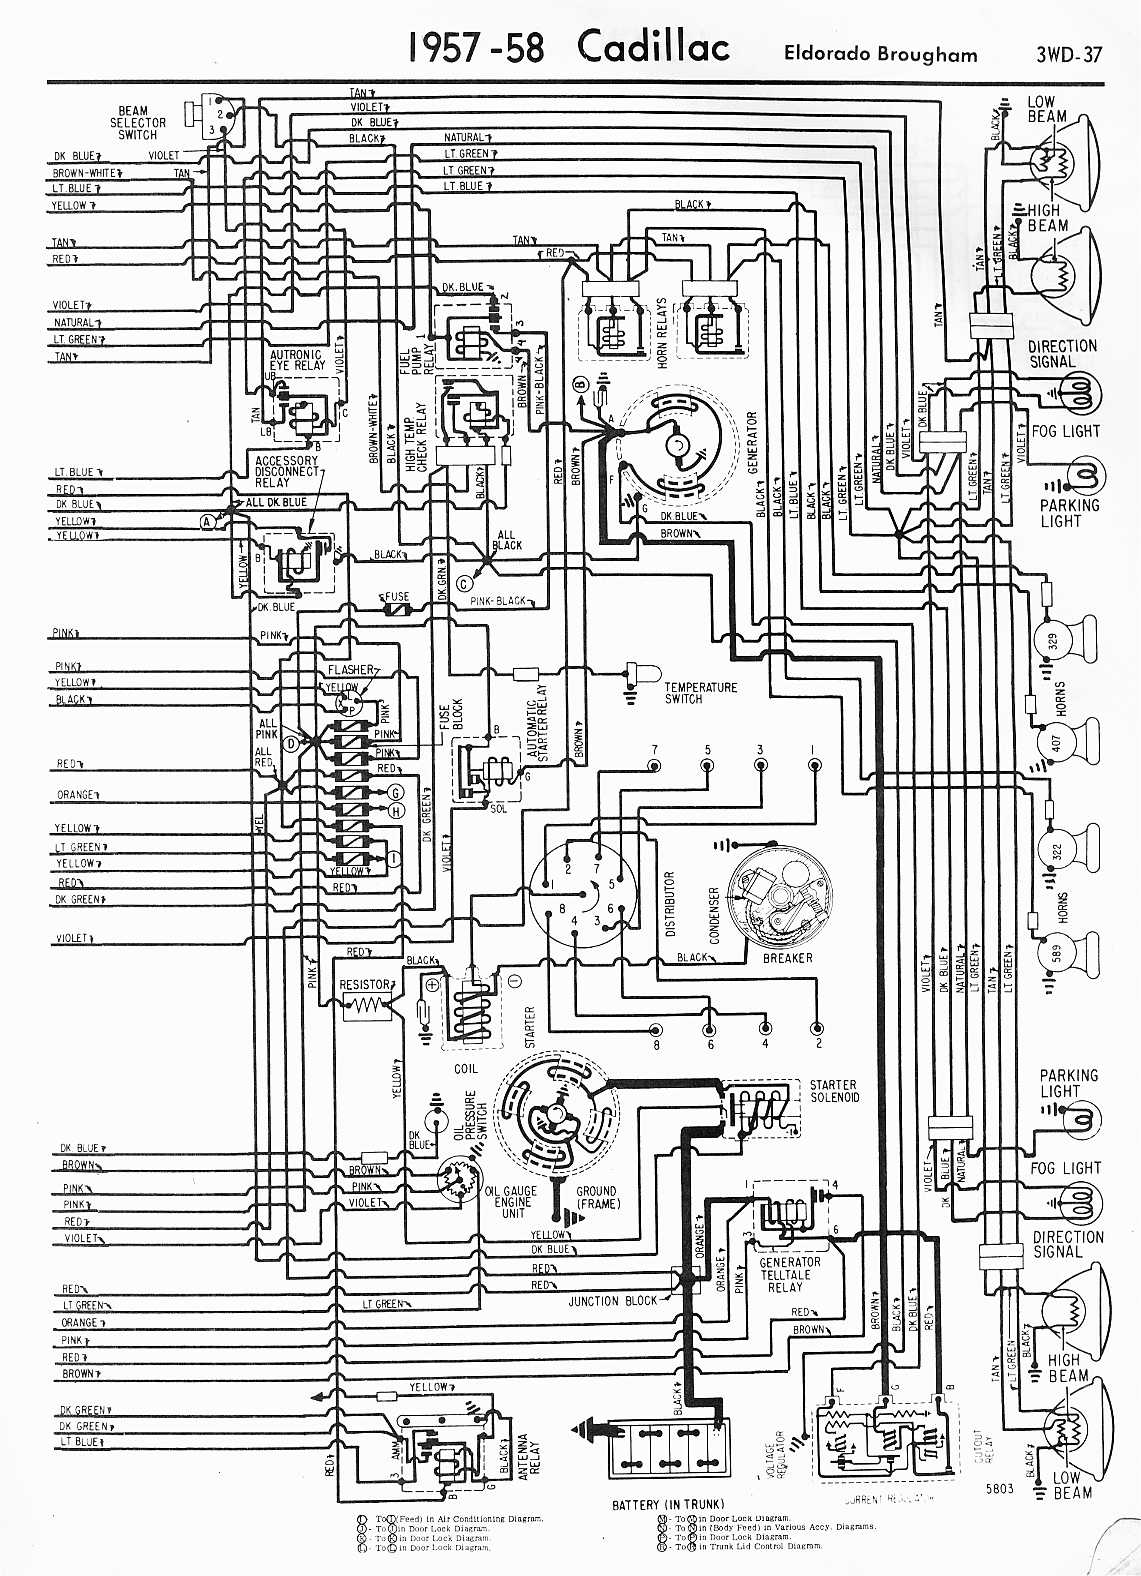 MWireCadi65_3WD 037 cadillac wiring diagrams 1957 1965 67 cadillac wiring diagram at mifinder.co